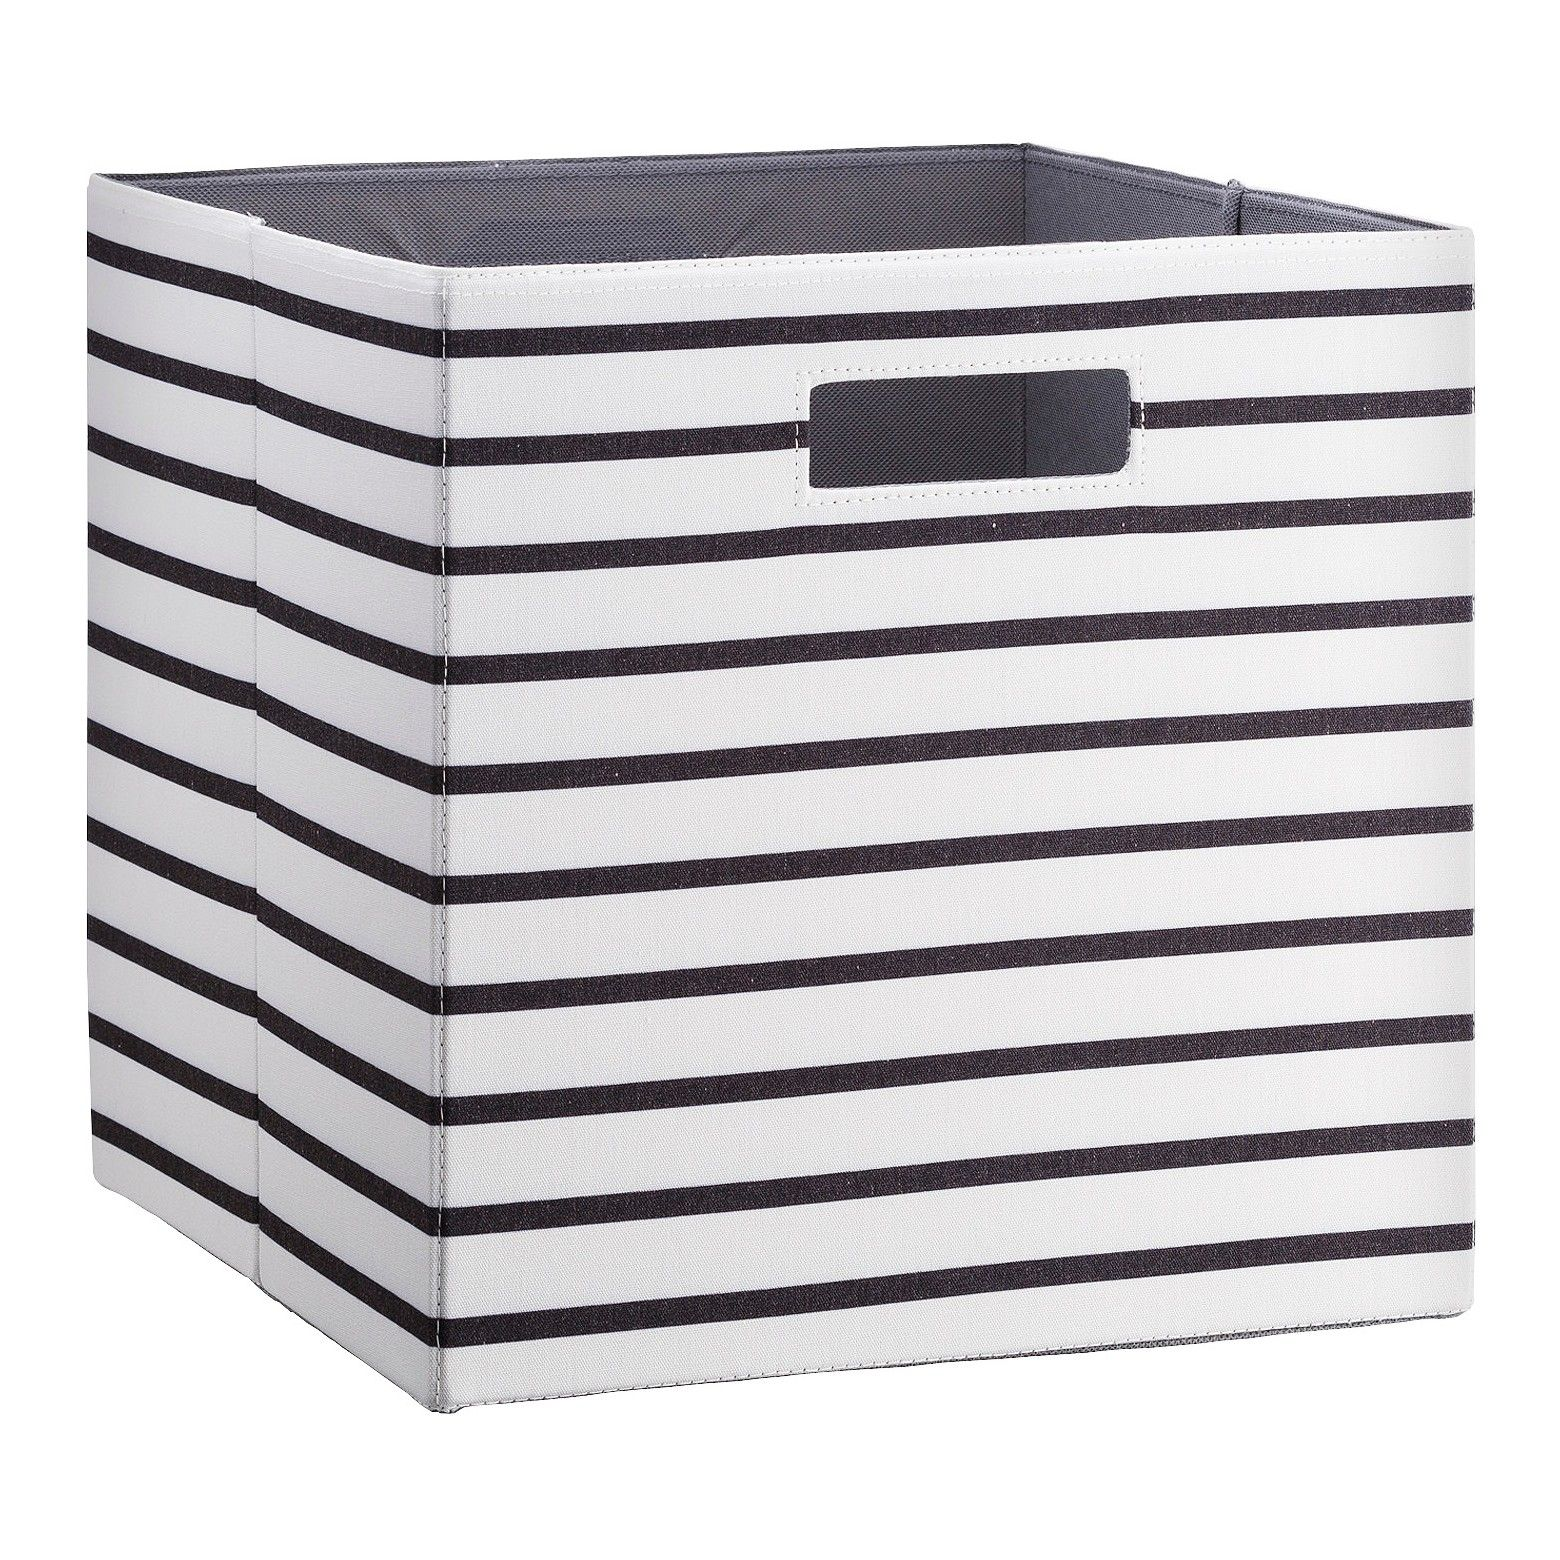 Fabric Cube Storage Bin White Black Stripe 13 Threshold Cube Storage Bins Fabric Storage Bins Fabric Storage Cubes